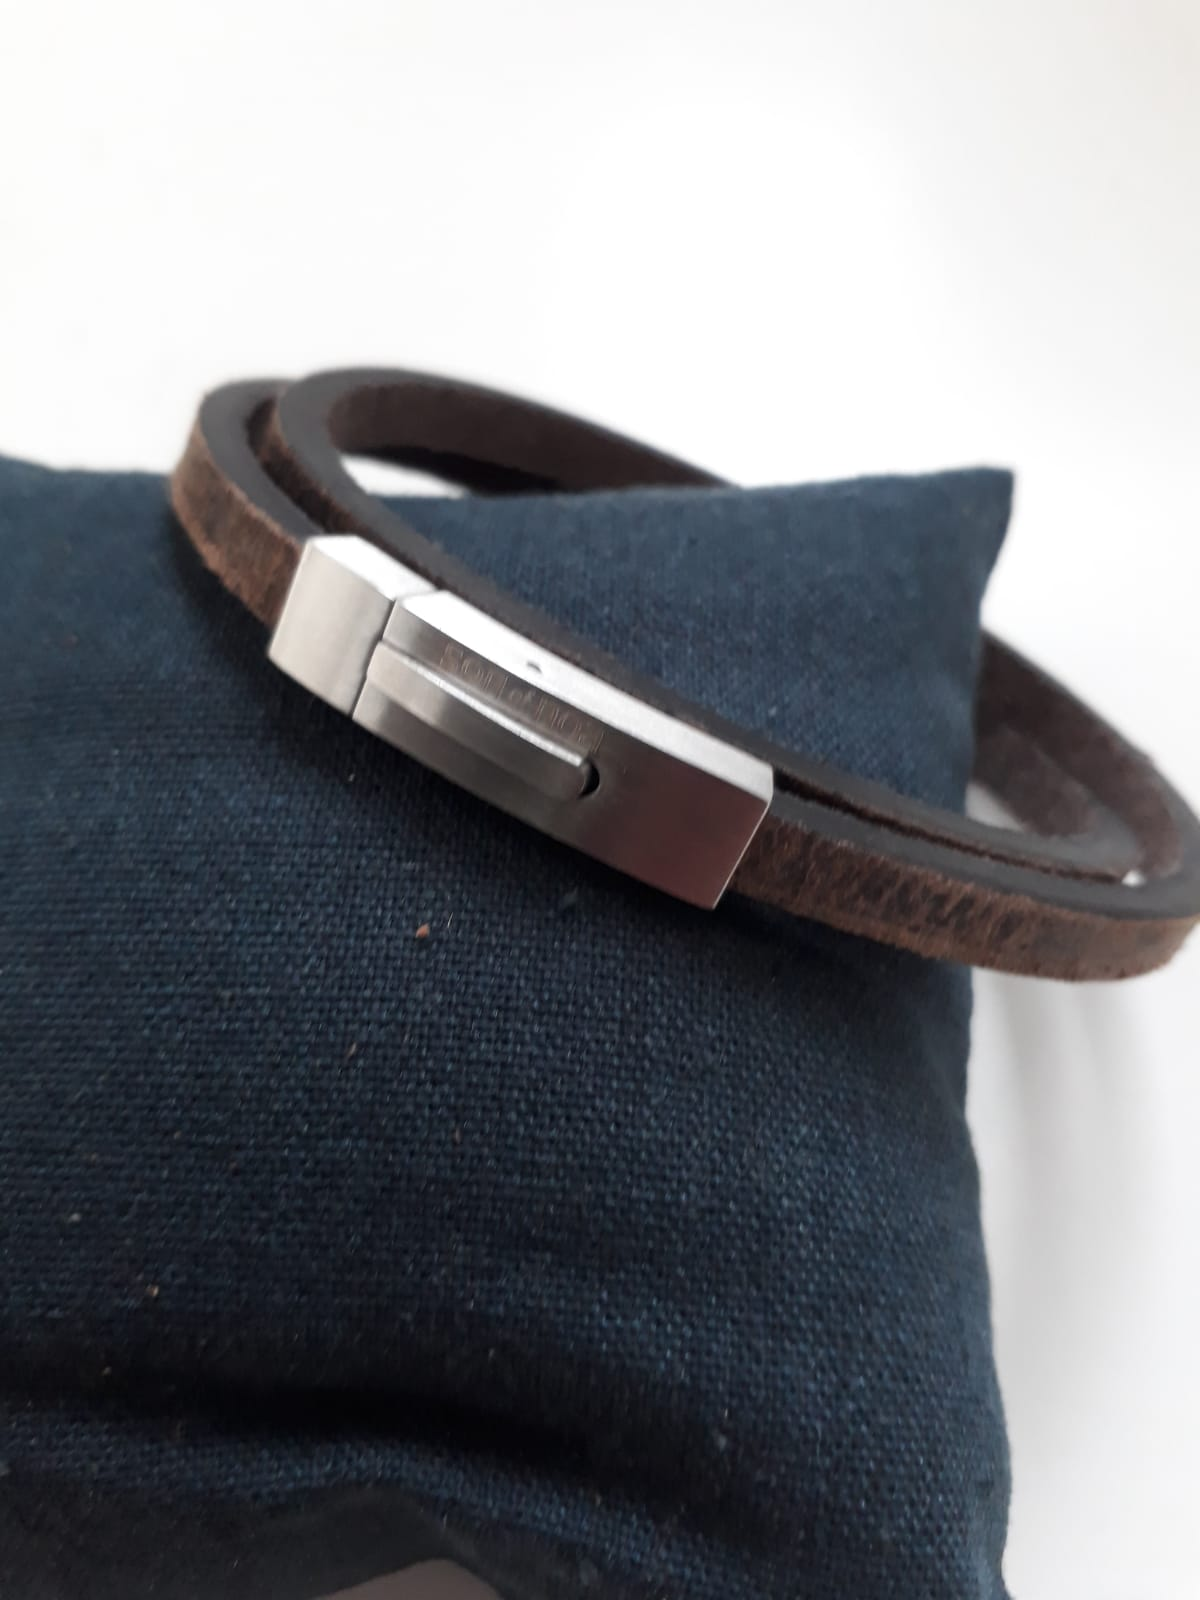 son of noa Herrenarmband 2